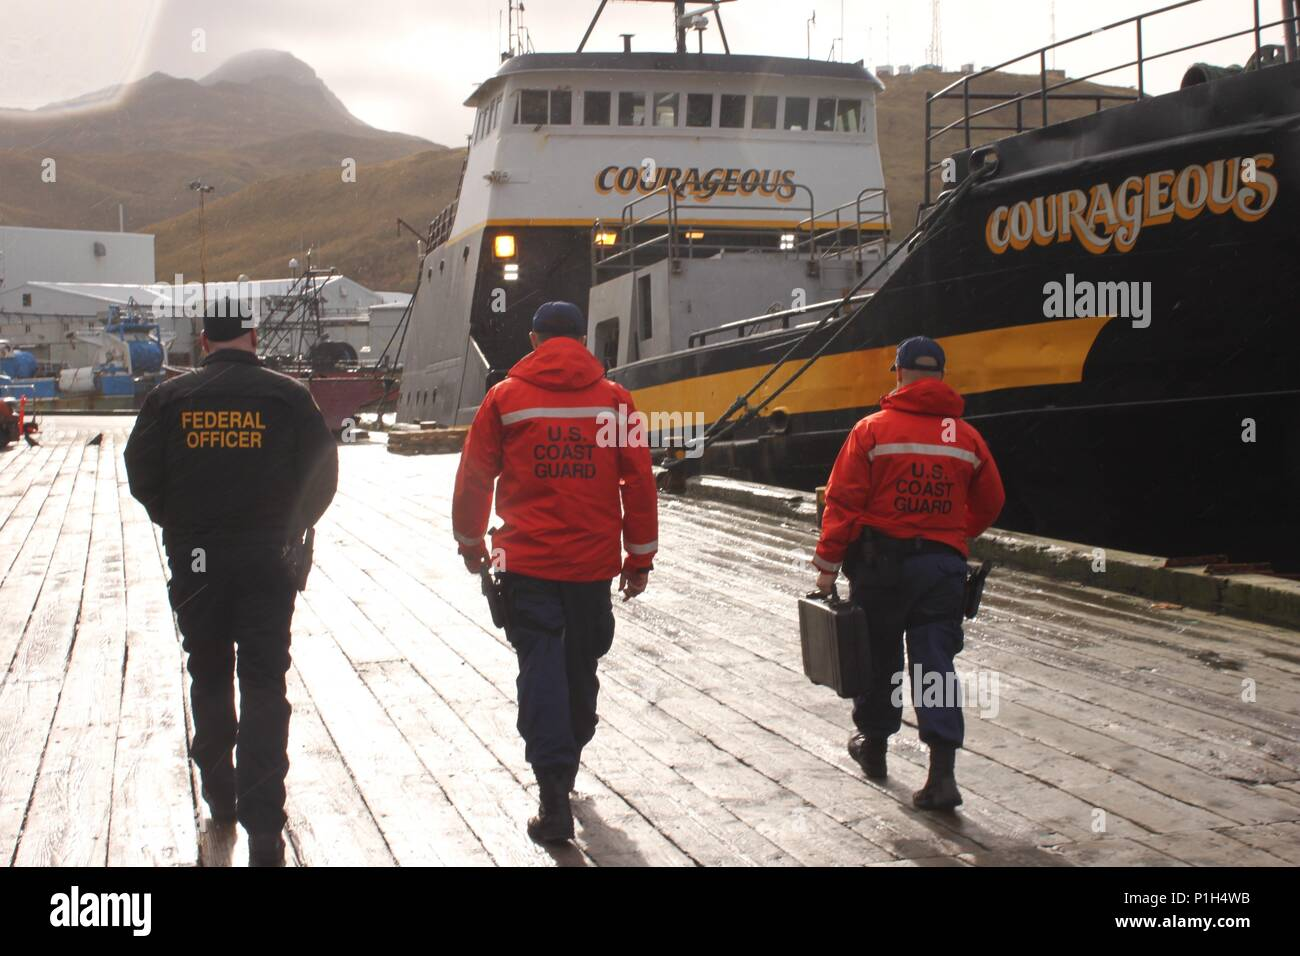 NOAA OLE Officer Roy Fisher, Ensign Nolan Salyer and Petty Officer 3rd Class Thomas Labarre, a maritime enforcement specialist, conduct joint agency boarding of the fishing vessel Courageous that previously served as the Coast Guard buoy tender Tupelo before being decommissioned, in Dutch Harbor, Alaska, Oct. 28, 2016. The Morgenthau conducted a 90-day 15,000 mile patrol in support of fisheries enforcement and served as a search and rescue asset during the busy Alaska fishing seasons. (U.S. Coast Guard photo by Ensign Brandon Newman/Released) - Stock Image